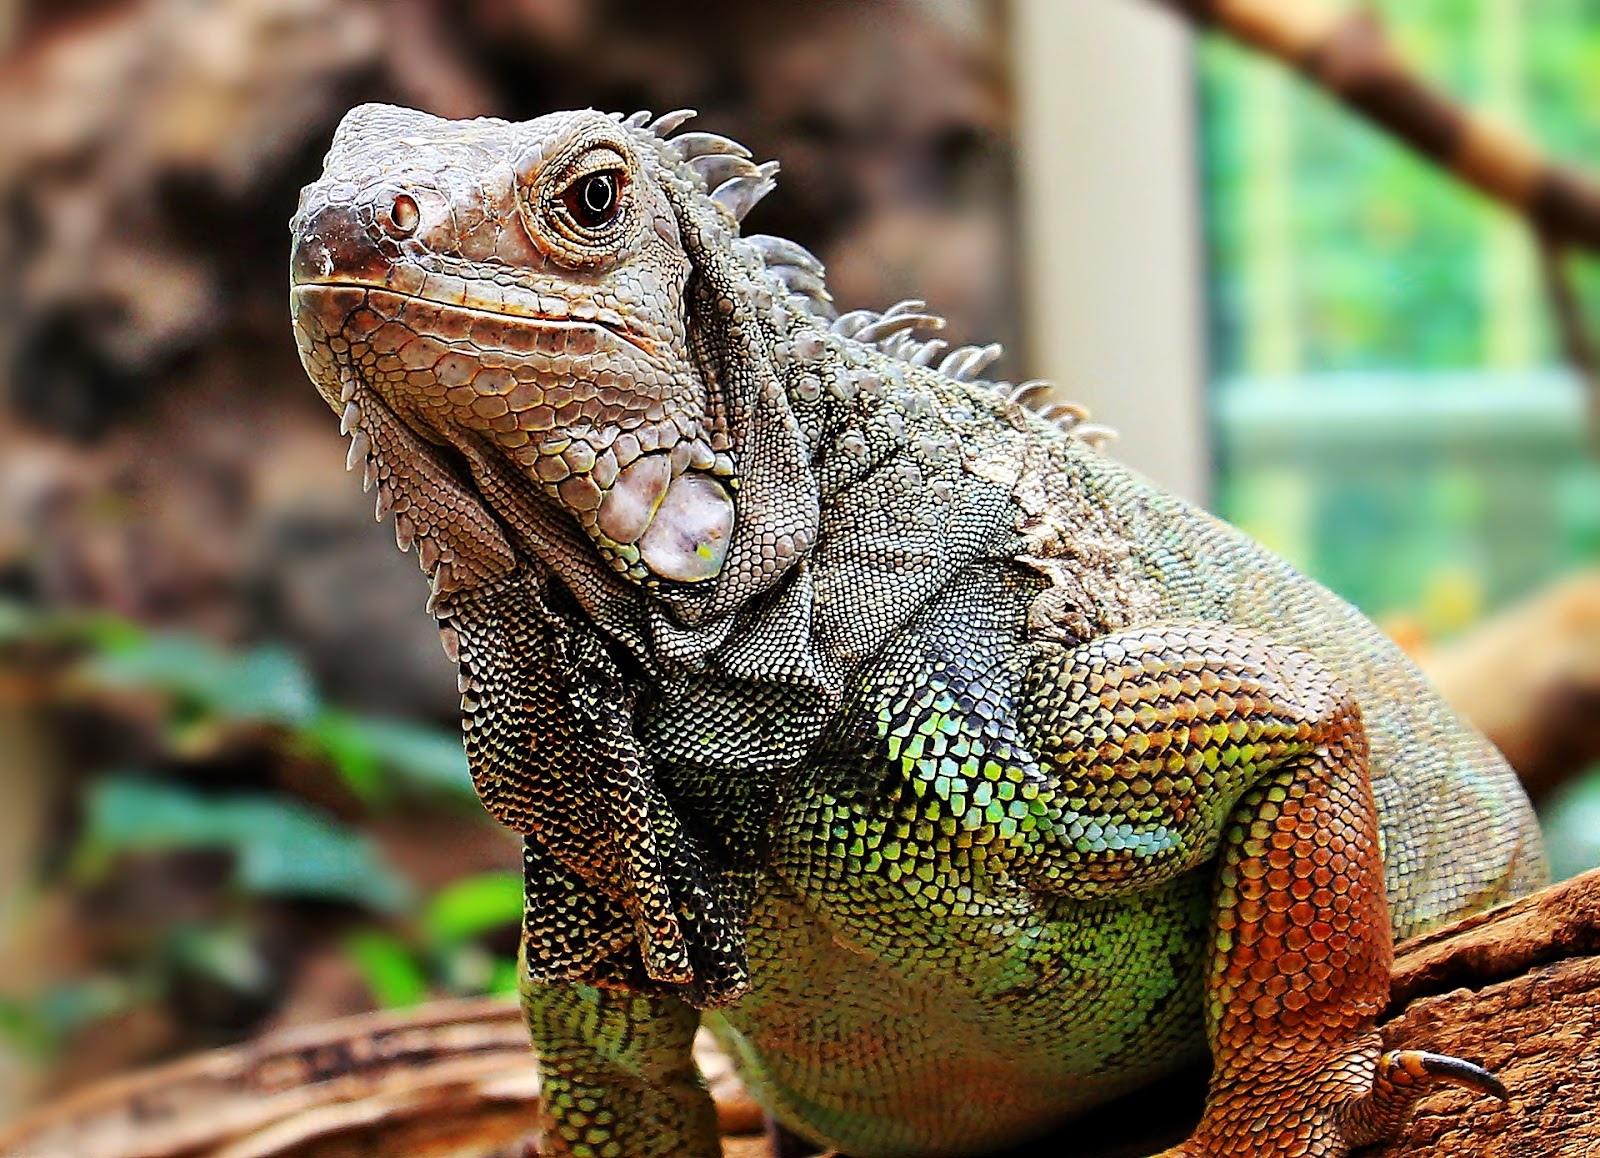 Iguana with head raised